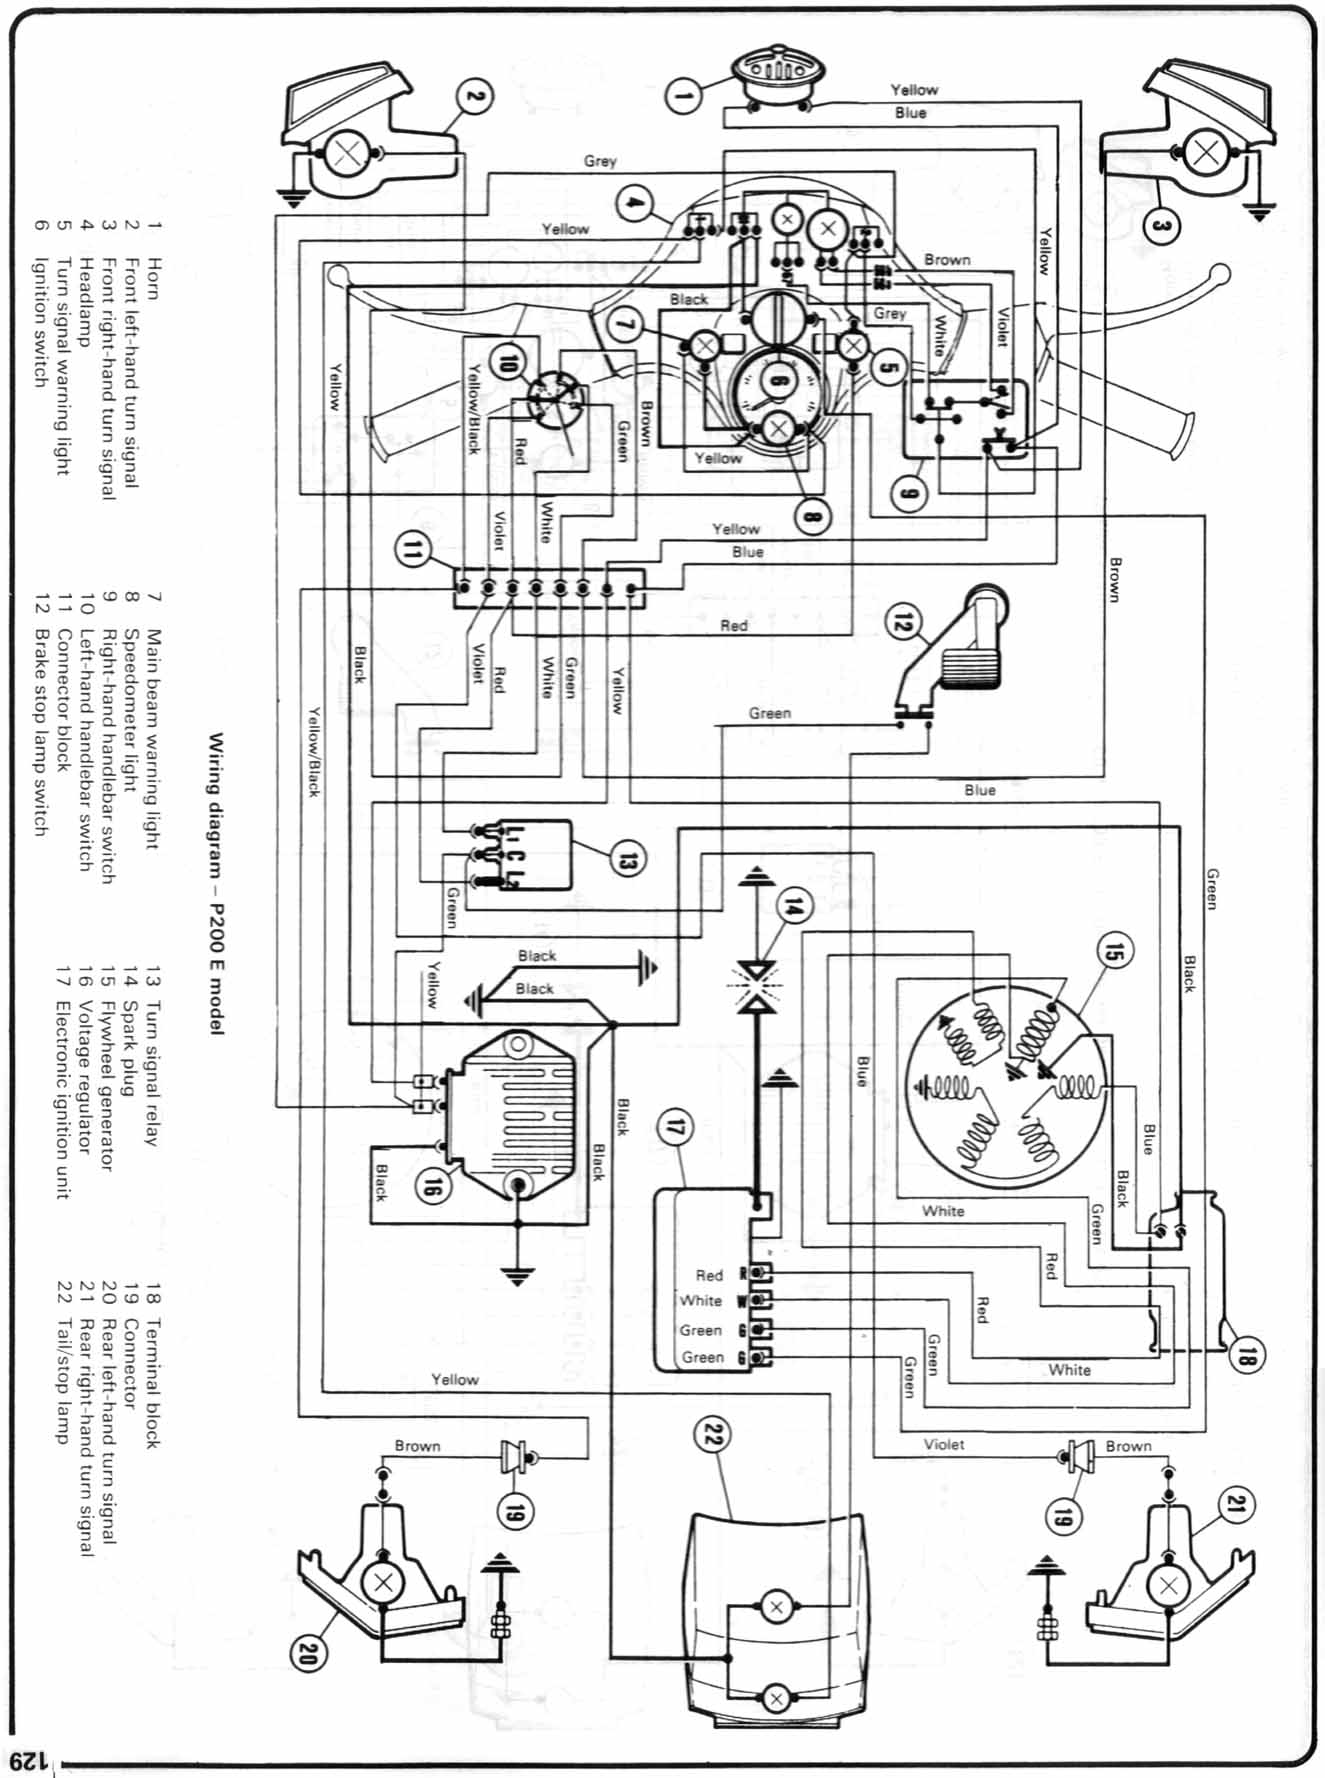 p200diag1 modern vespa seeking advice on an overly ambitious electrical vespa p125x wiring diagram at nearapp.co